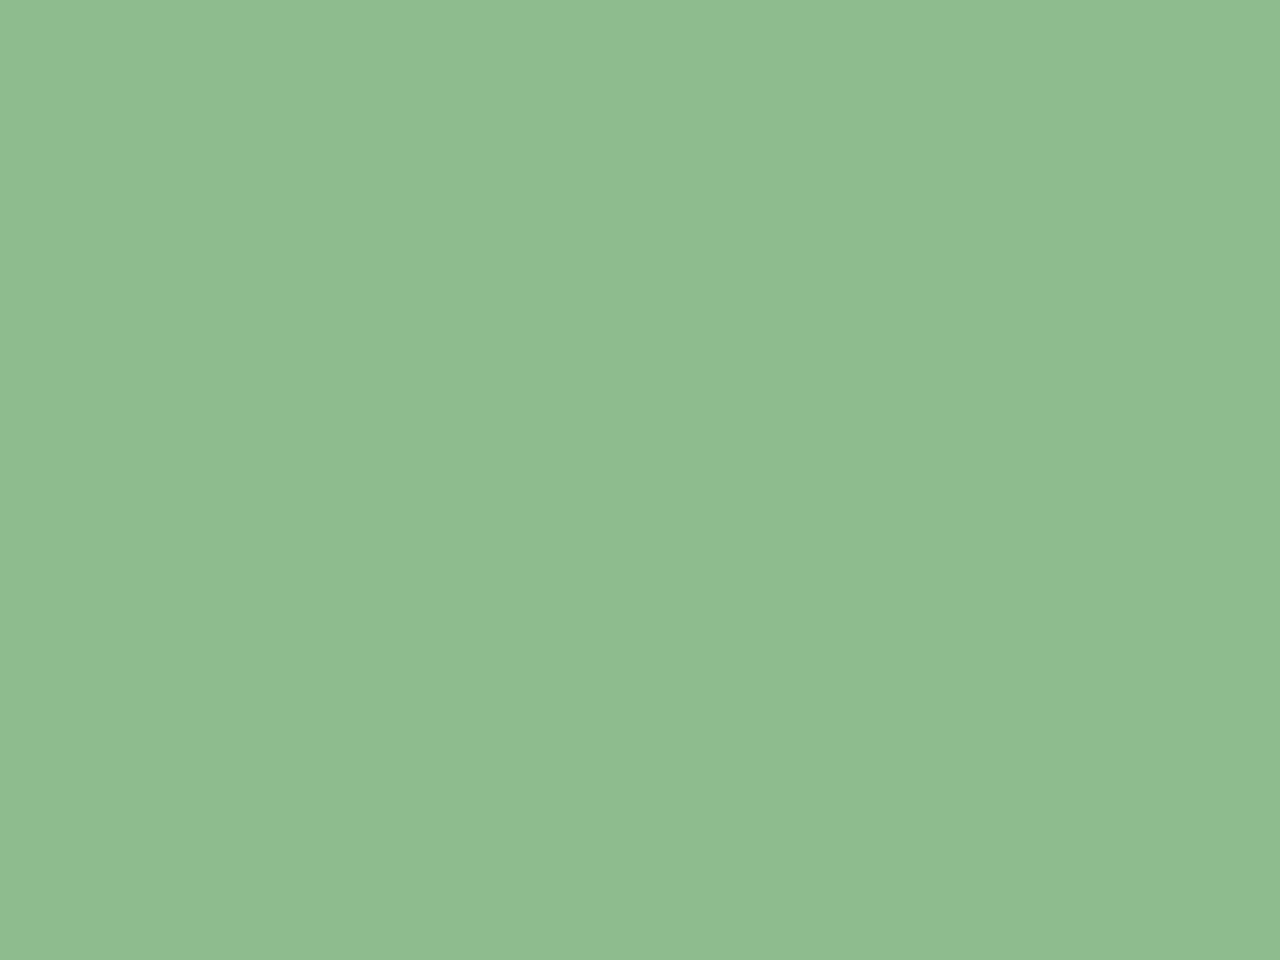 1280x960 Dark Sea Green Solid Color Background